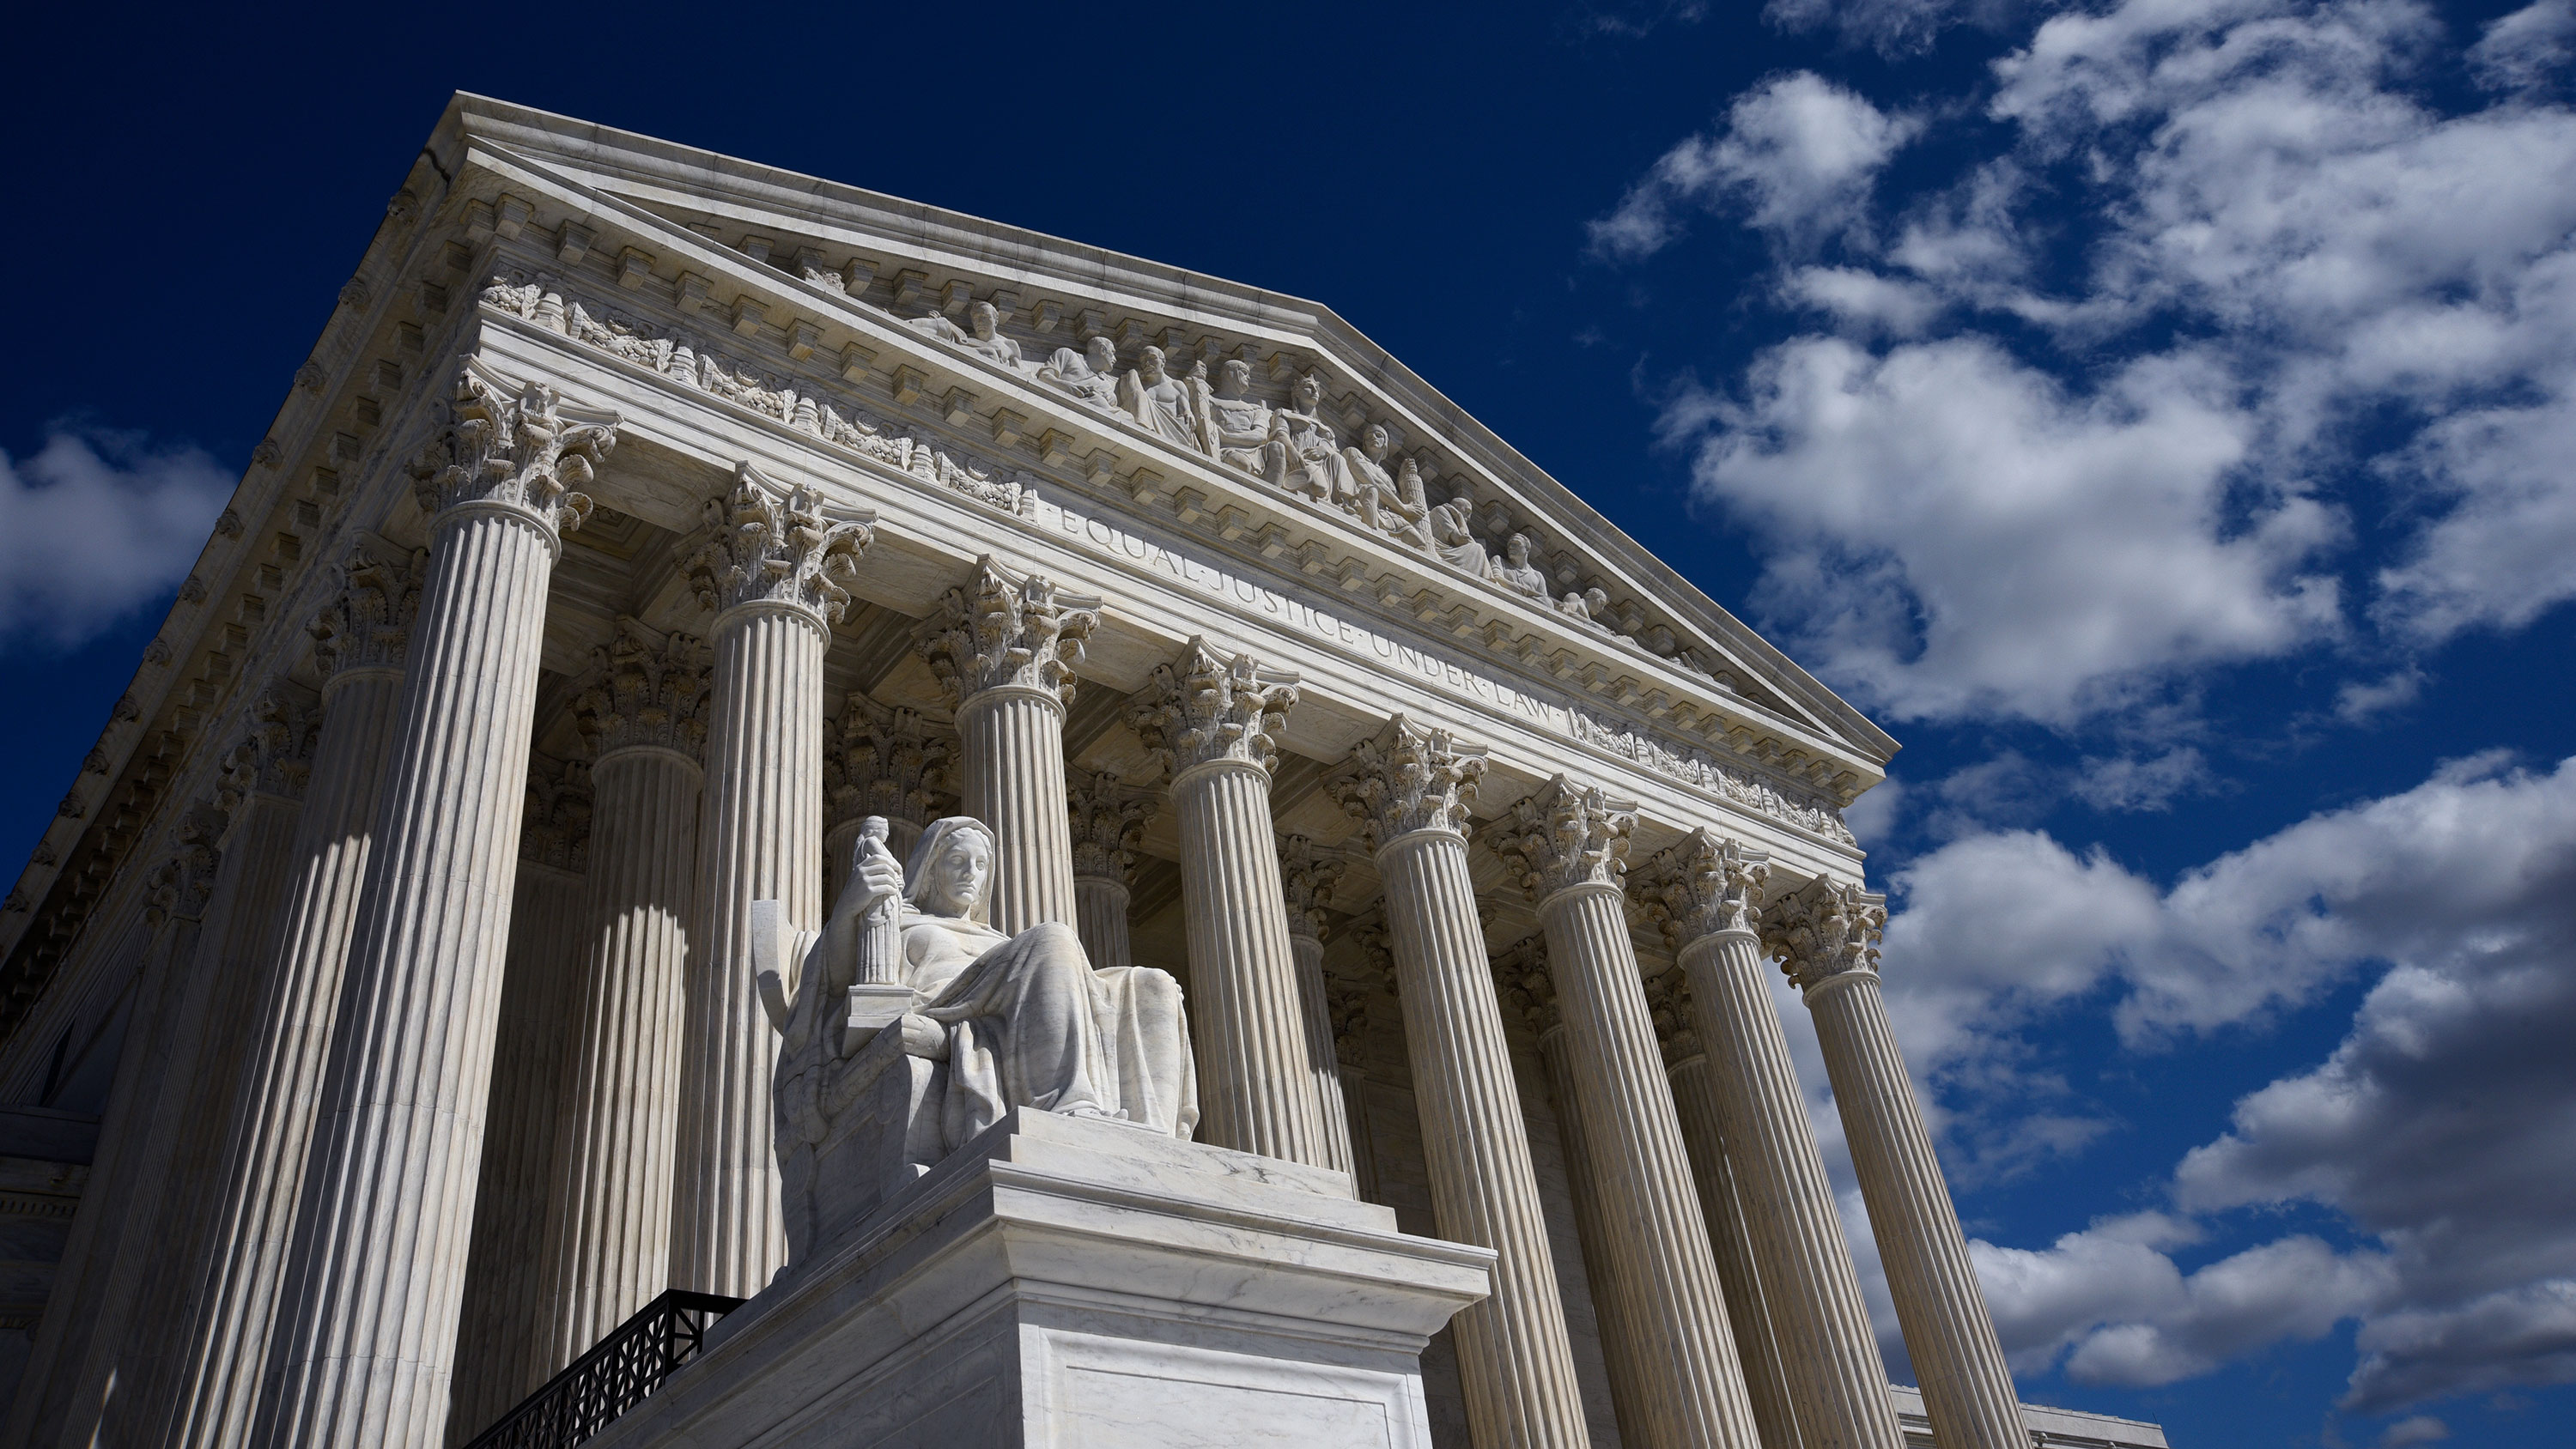 READ: Supreme Court opinion in same-sex couple foster care agency case